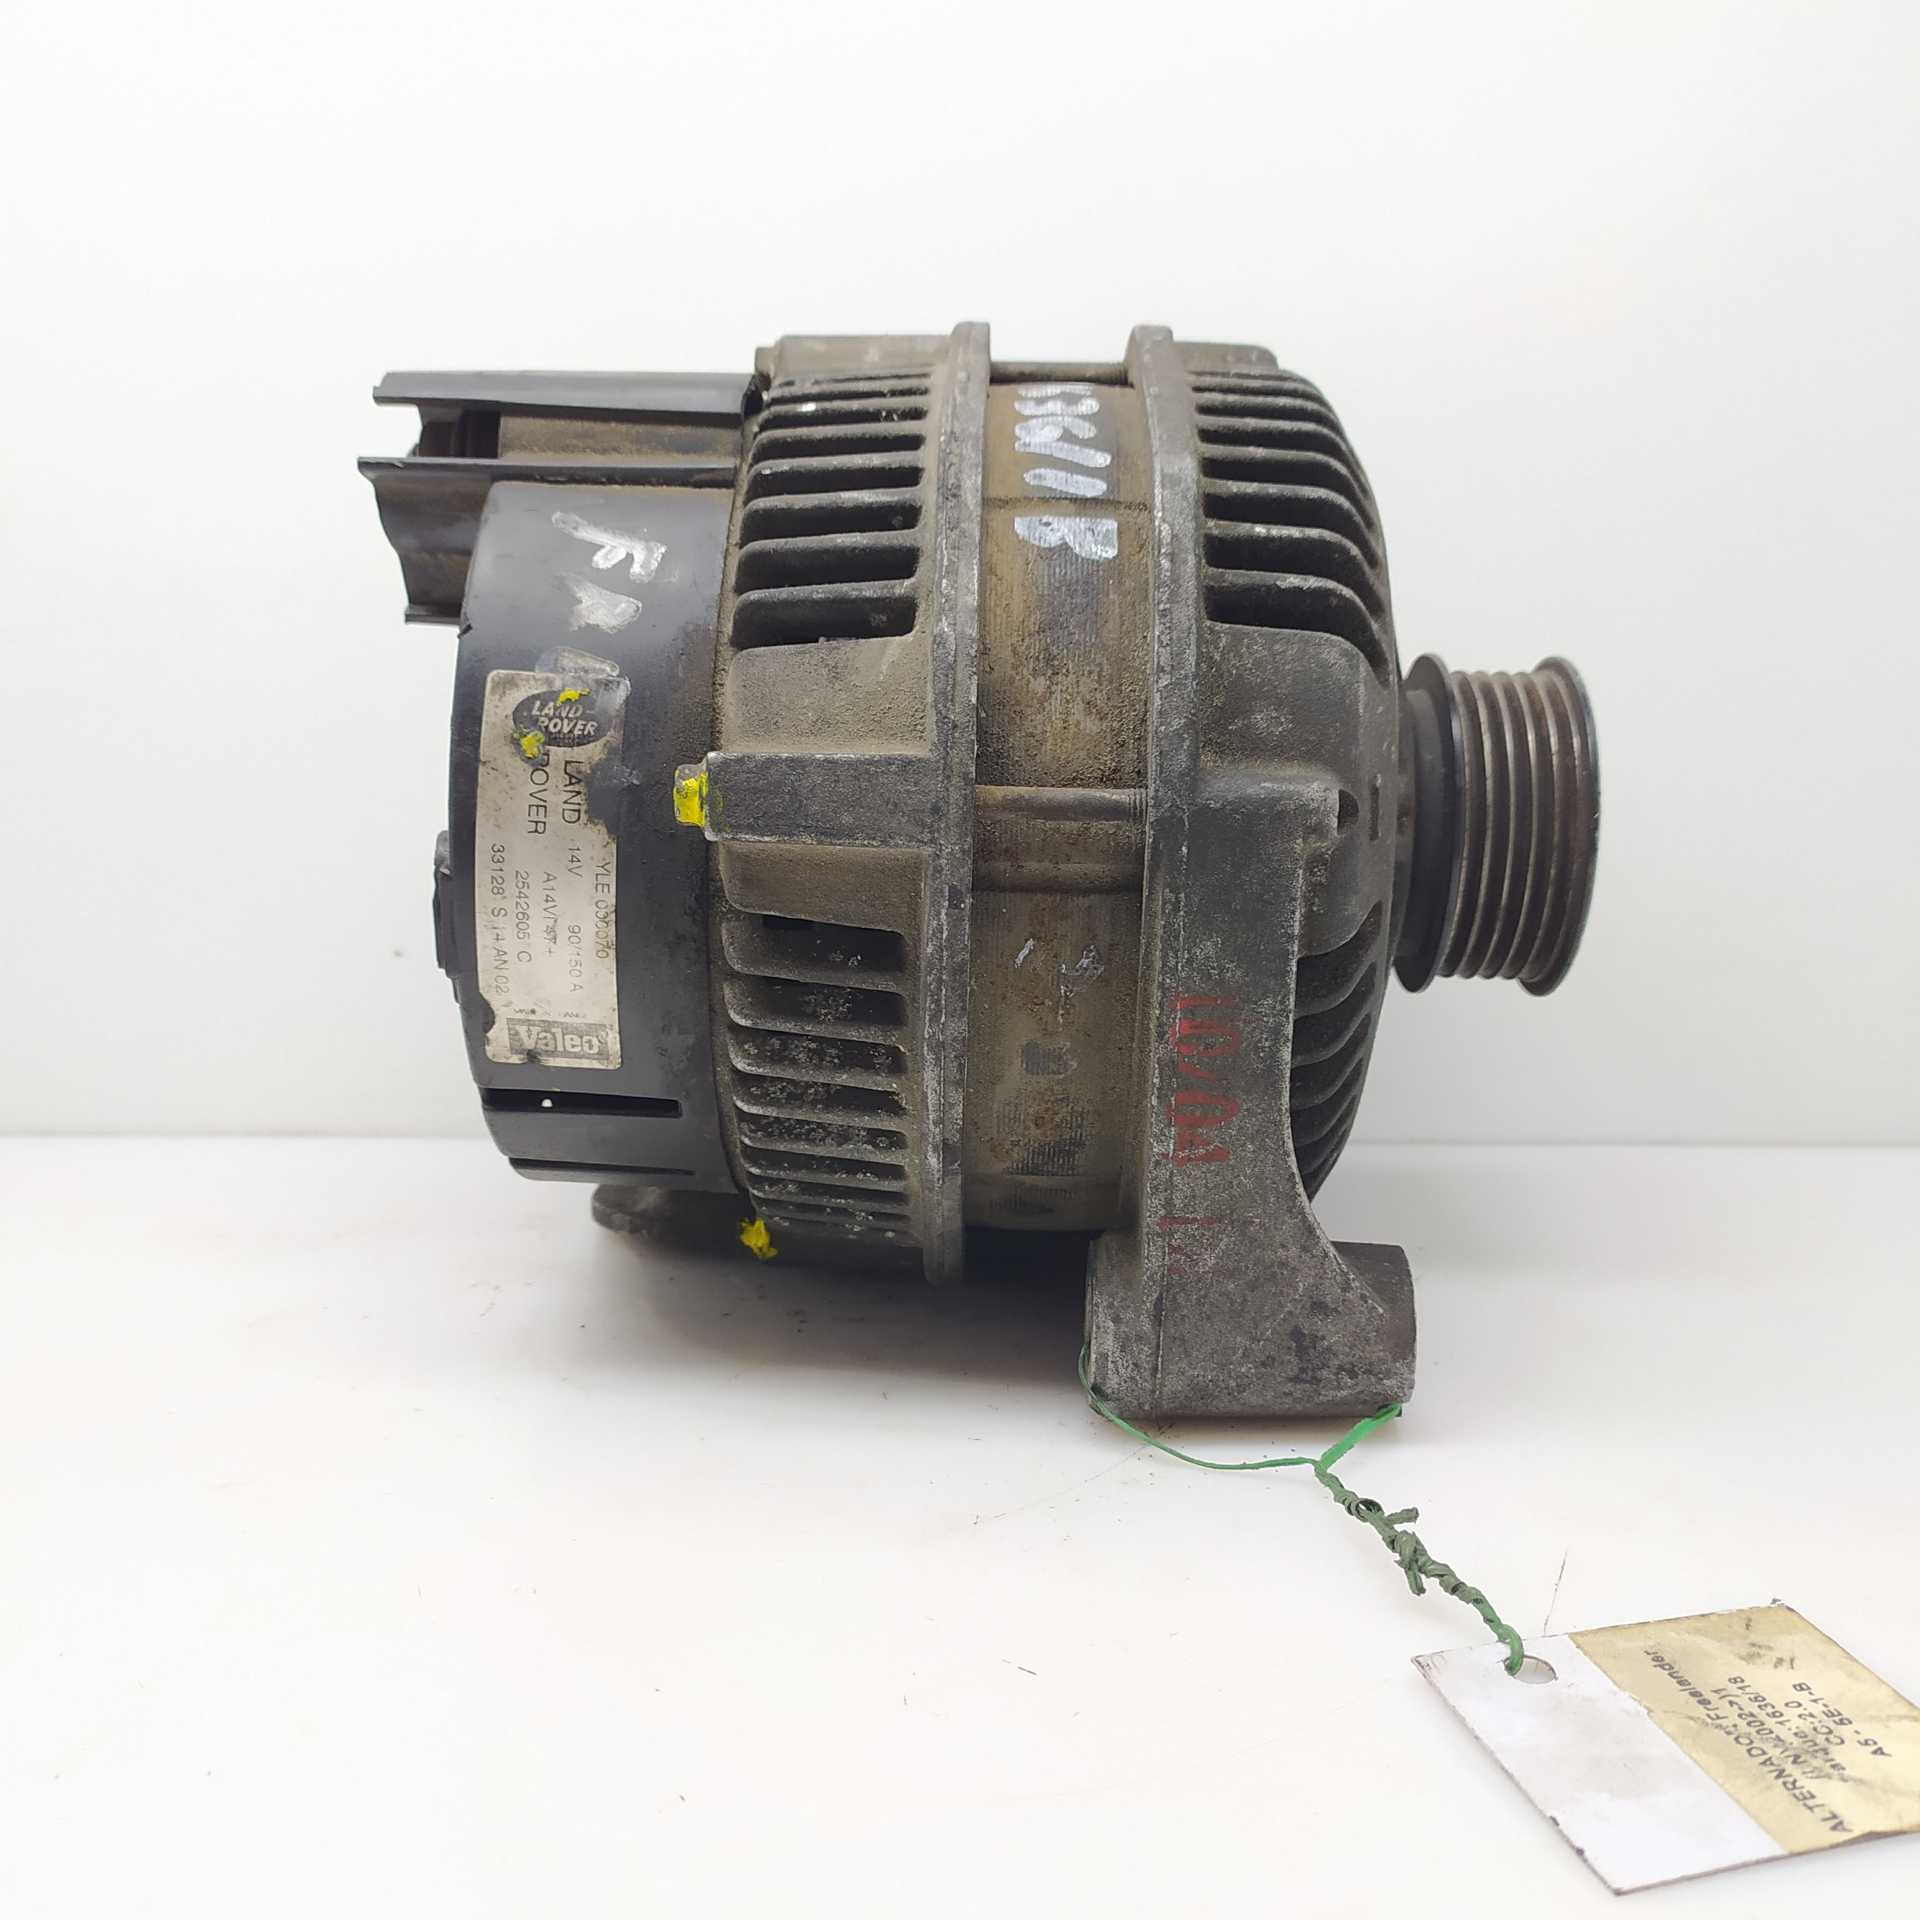 ALTERNADOR LAND ROVER FREELANDER Soft Top 2.0 DI 4x4 (72 KW / 98 CV) (02.1998 - 10.2006)